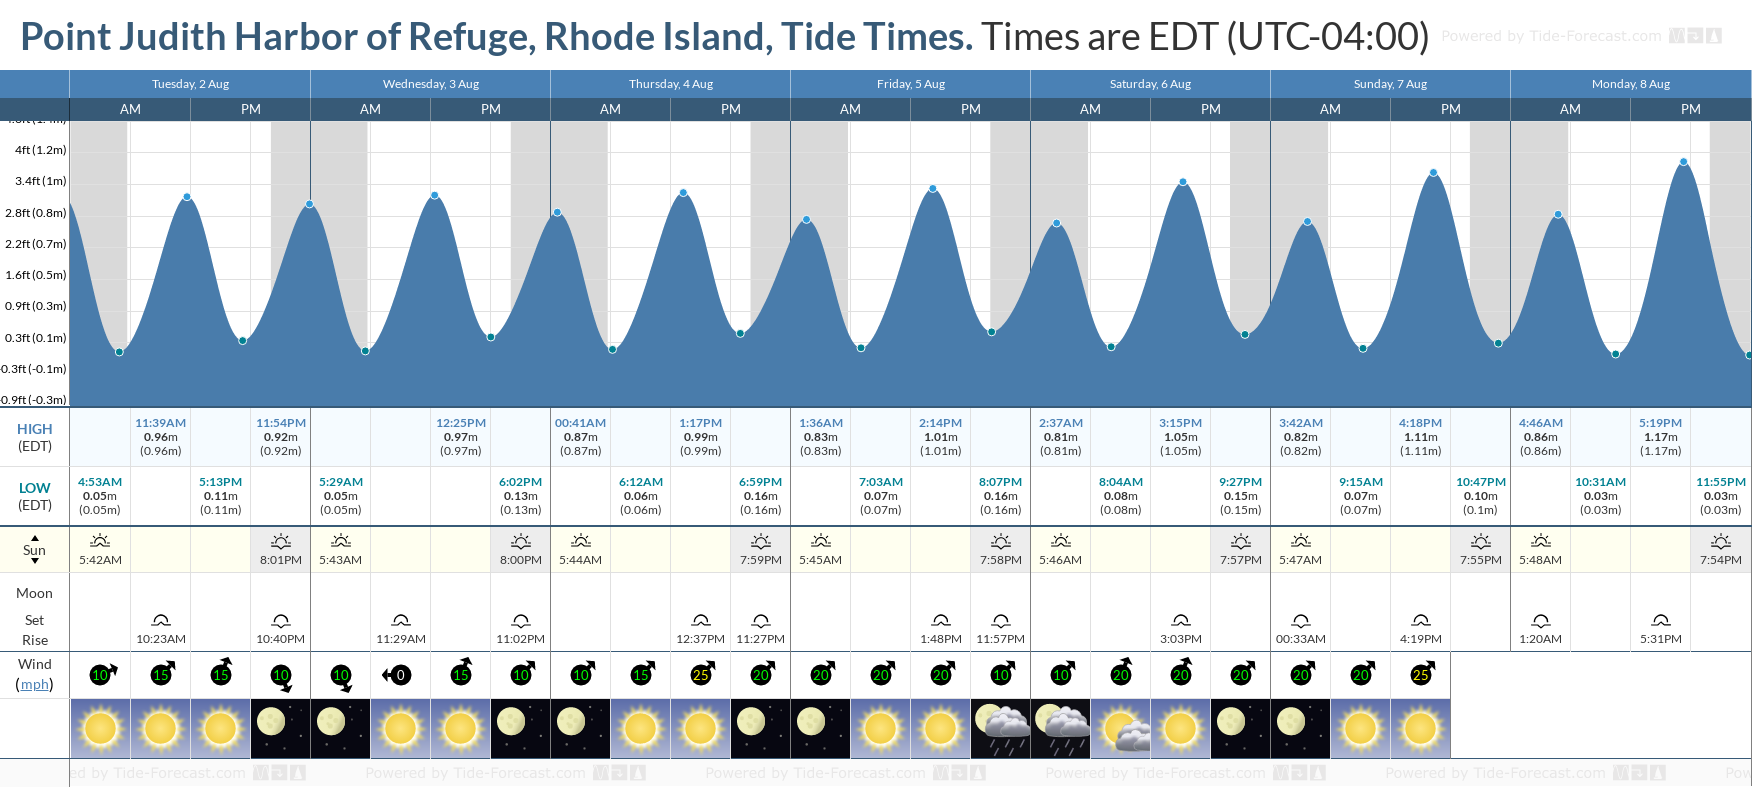 Point Judith Harbor of Refuge, Rhode Island Tide Chart including high and low tide tide times for the next 7 days